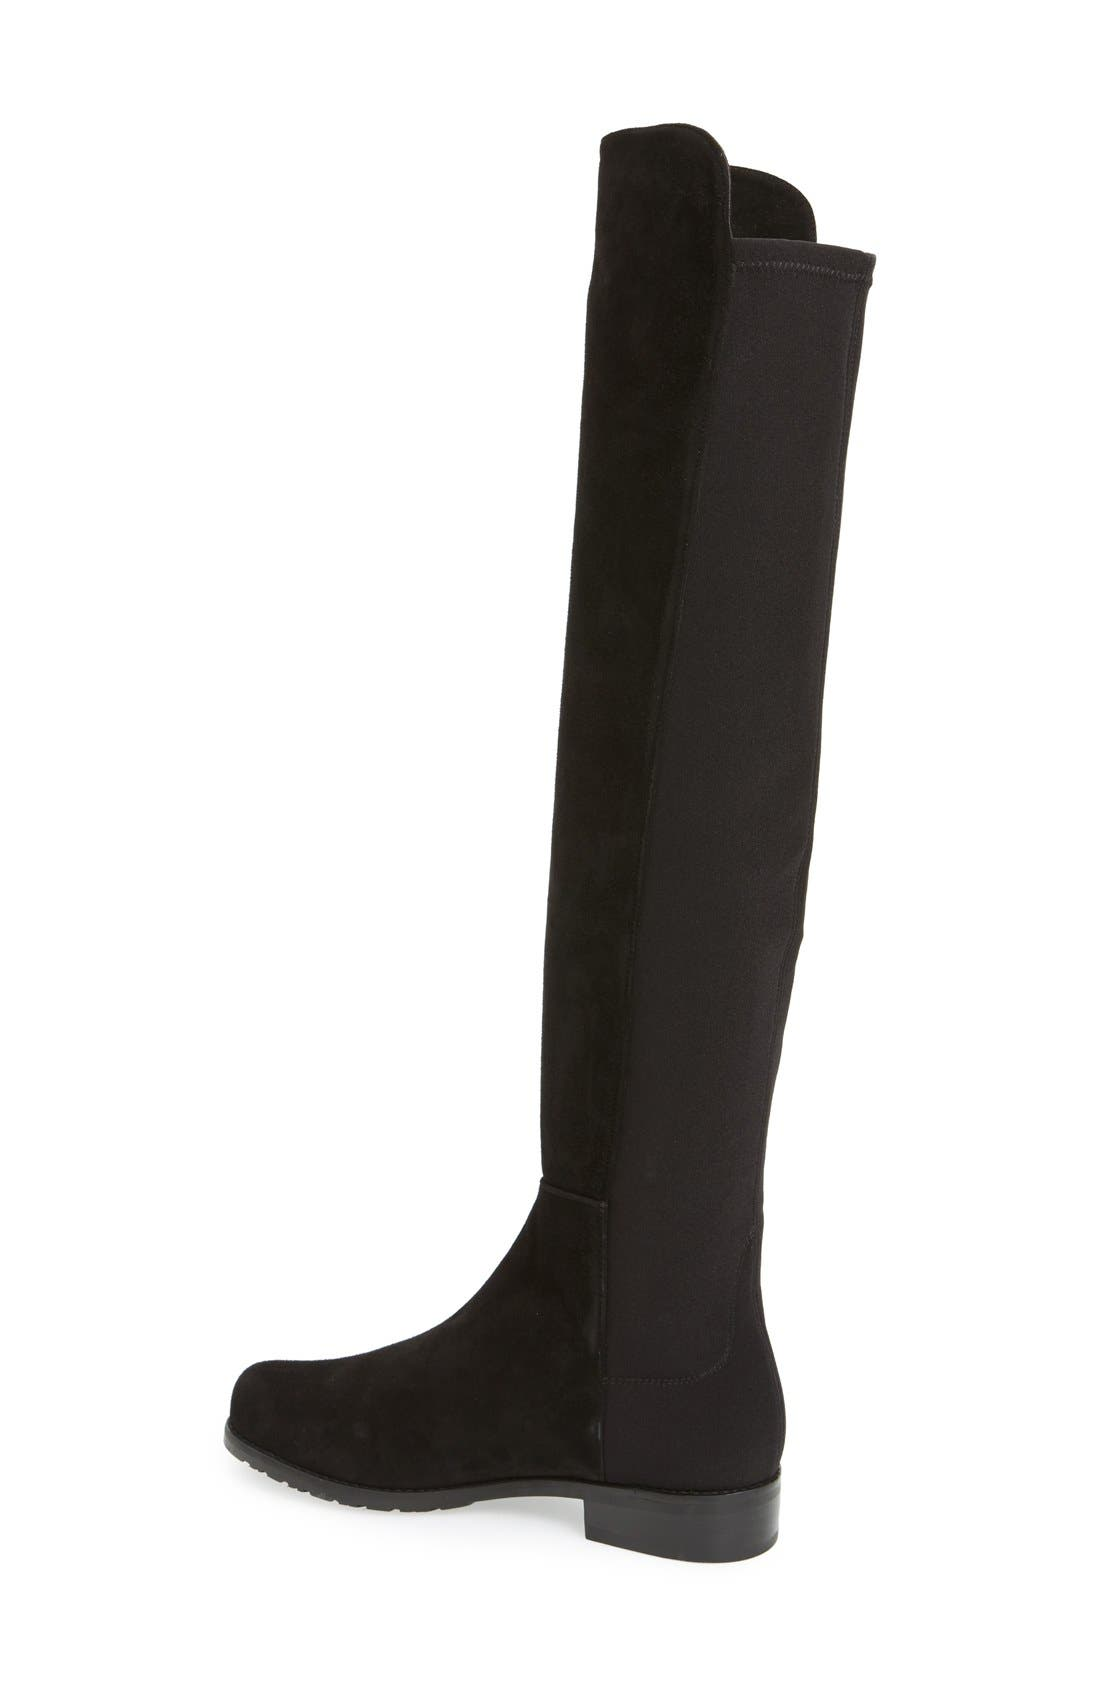 STUART WEITZMAN, 5050 Over the Knee Leather Boot, Alternate thumbnail 2, color, BLACK SUEDE